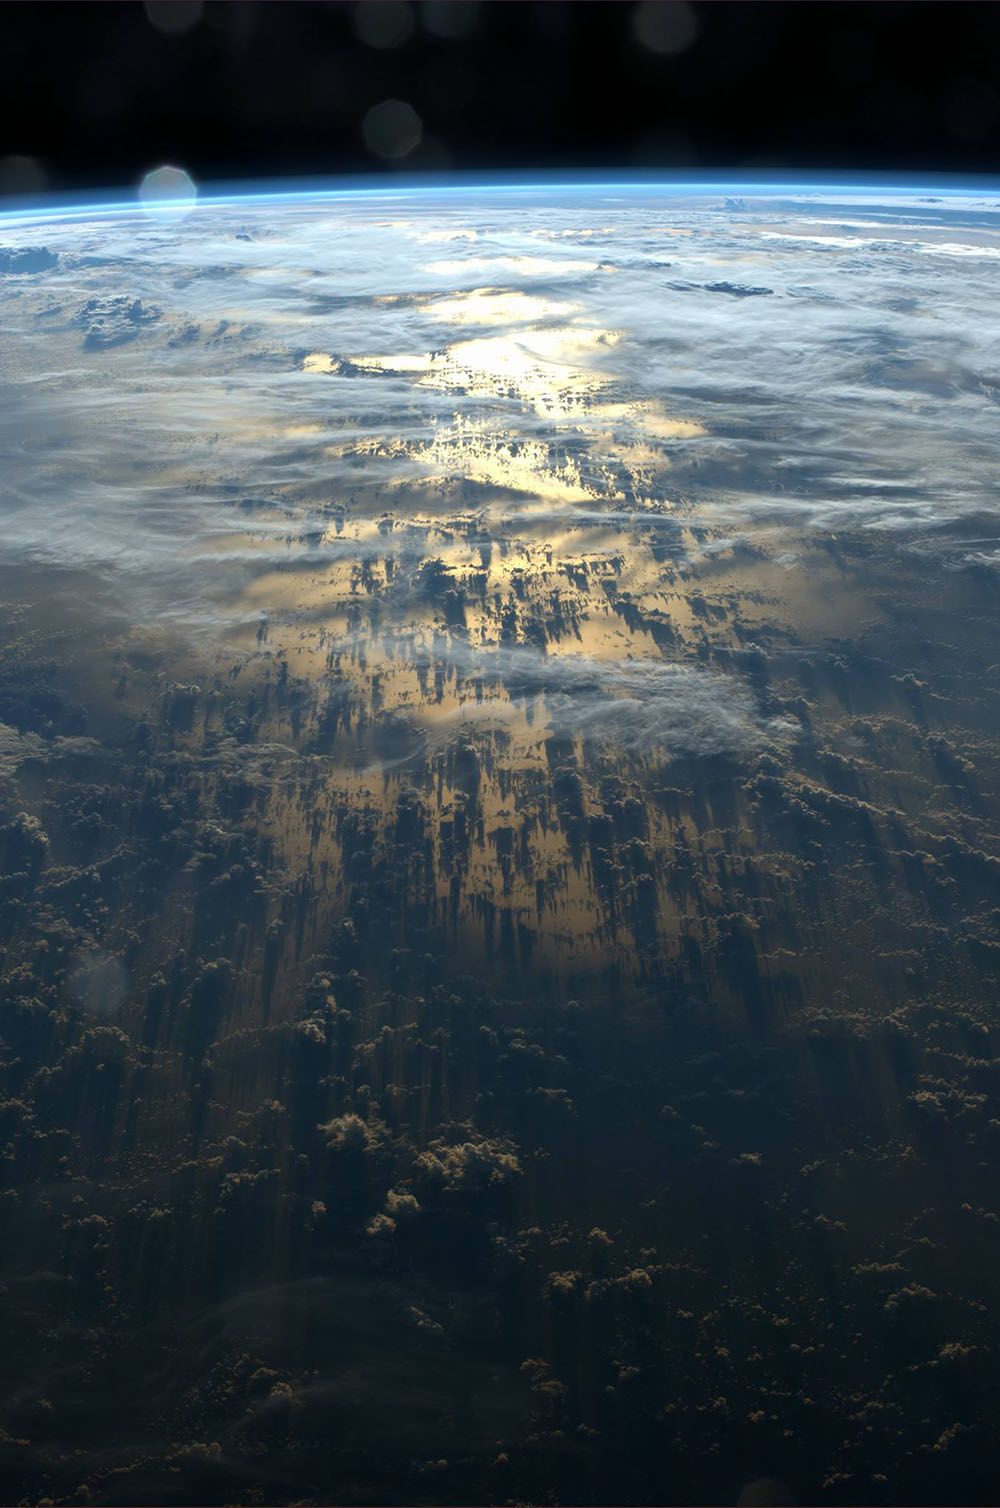 Clouds Cast Thousand-Mile Shadows into Space When Viewed Aboard the International Space Station